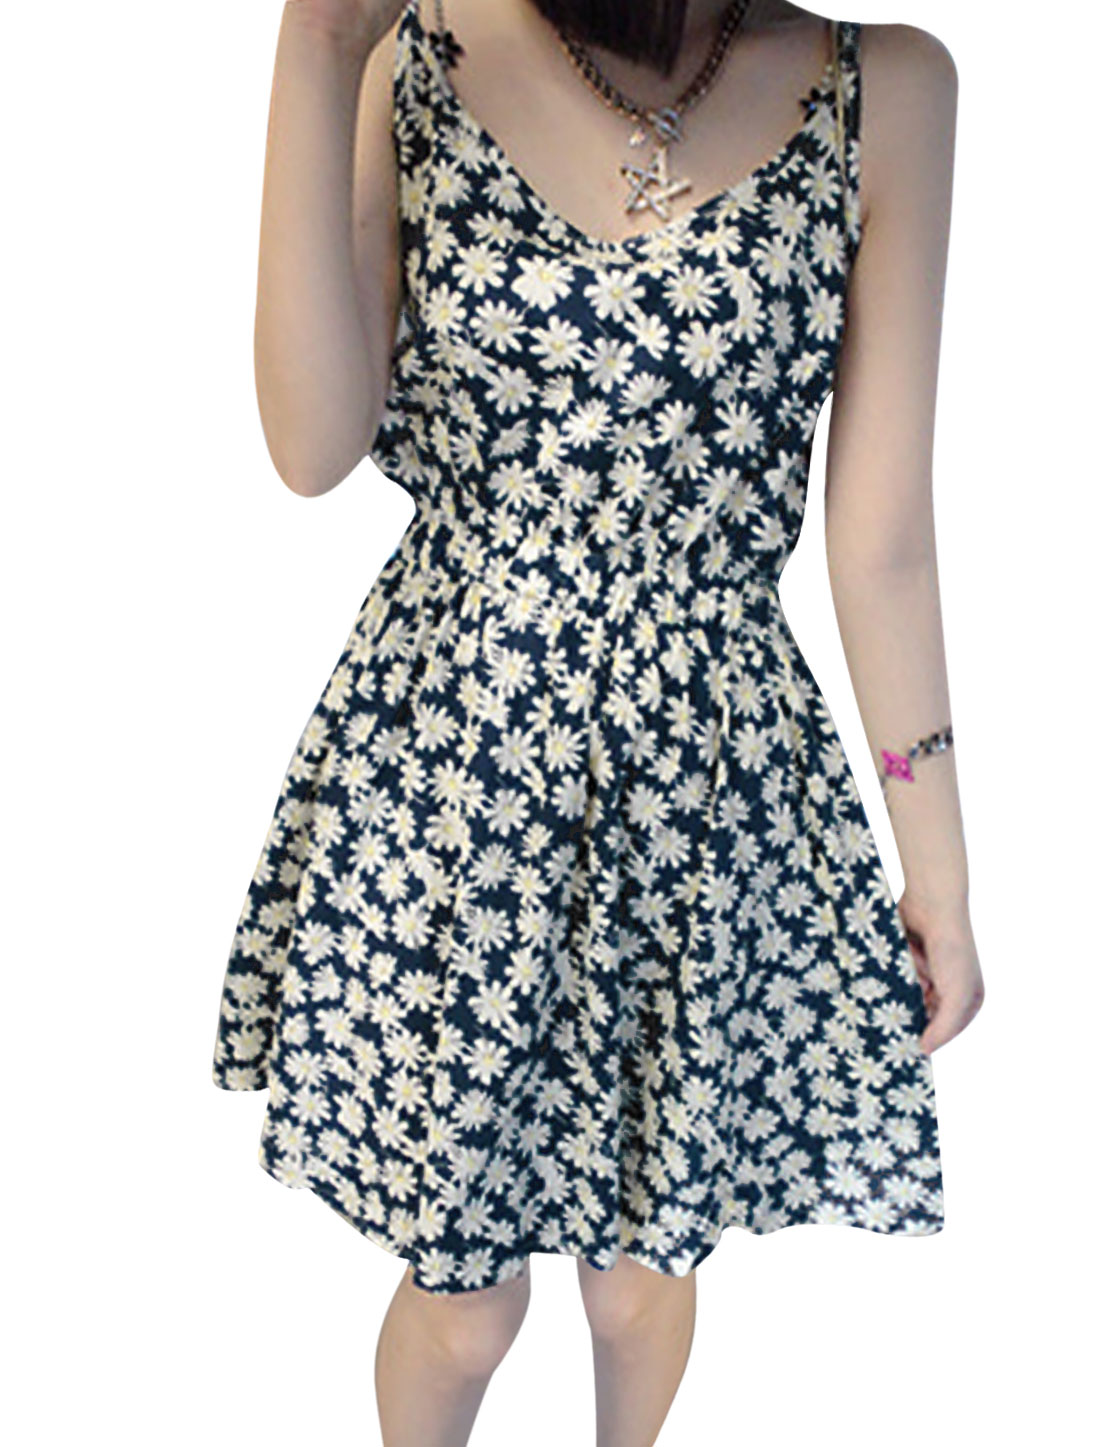 Lady Spaghetti Strap Elastic Waist Floral Prints Unlined Dress Beige Navy Blue S